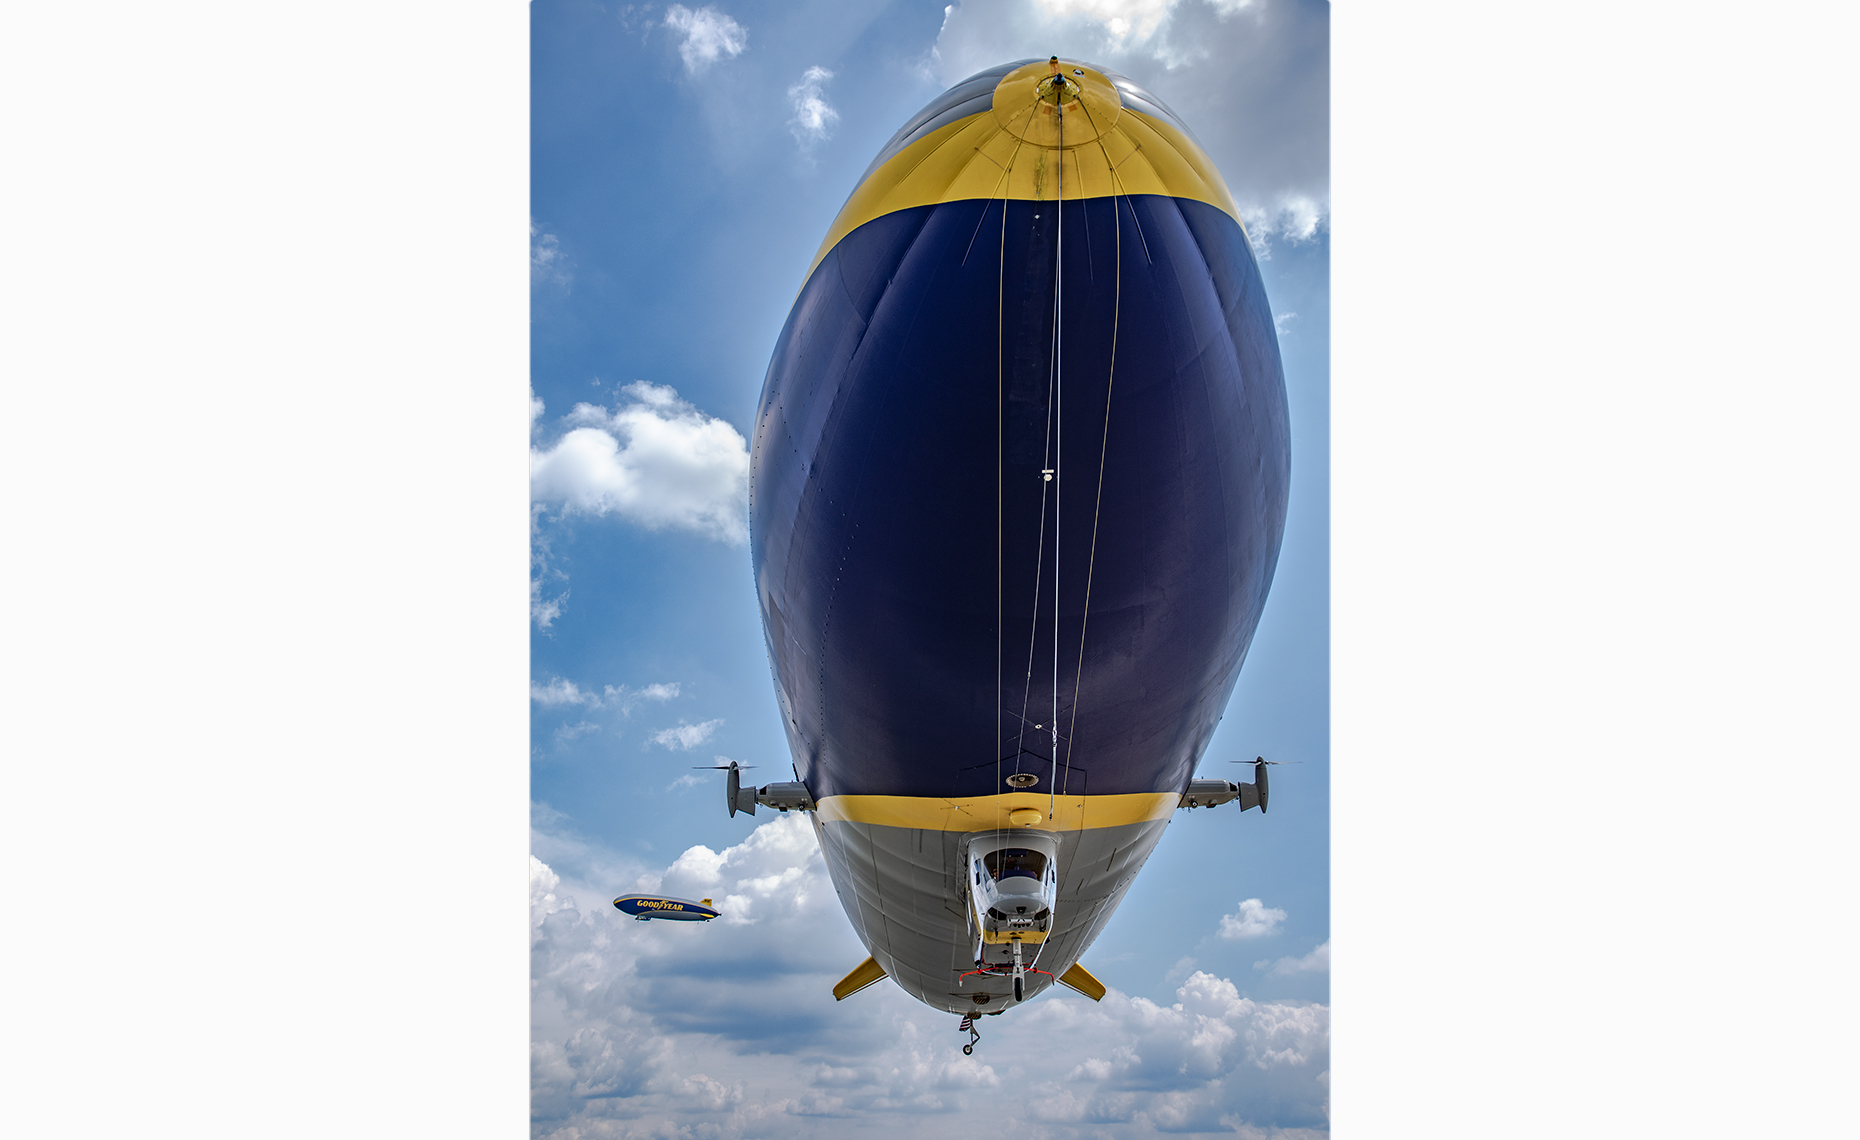 Goodyear Zeppelin Airship Blimps